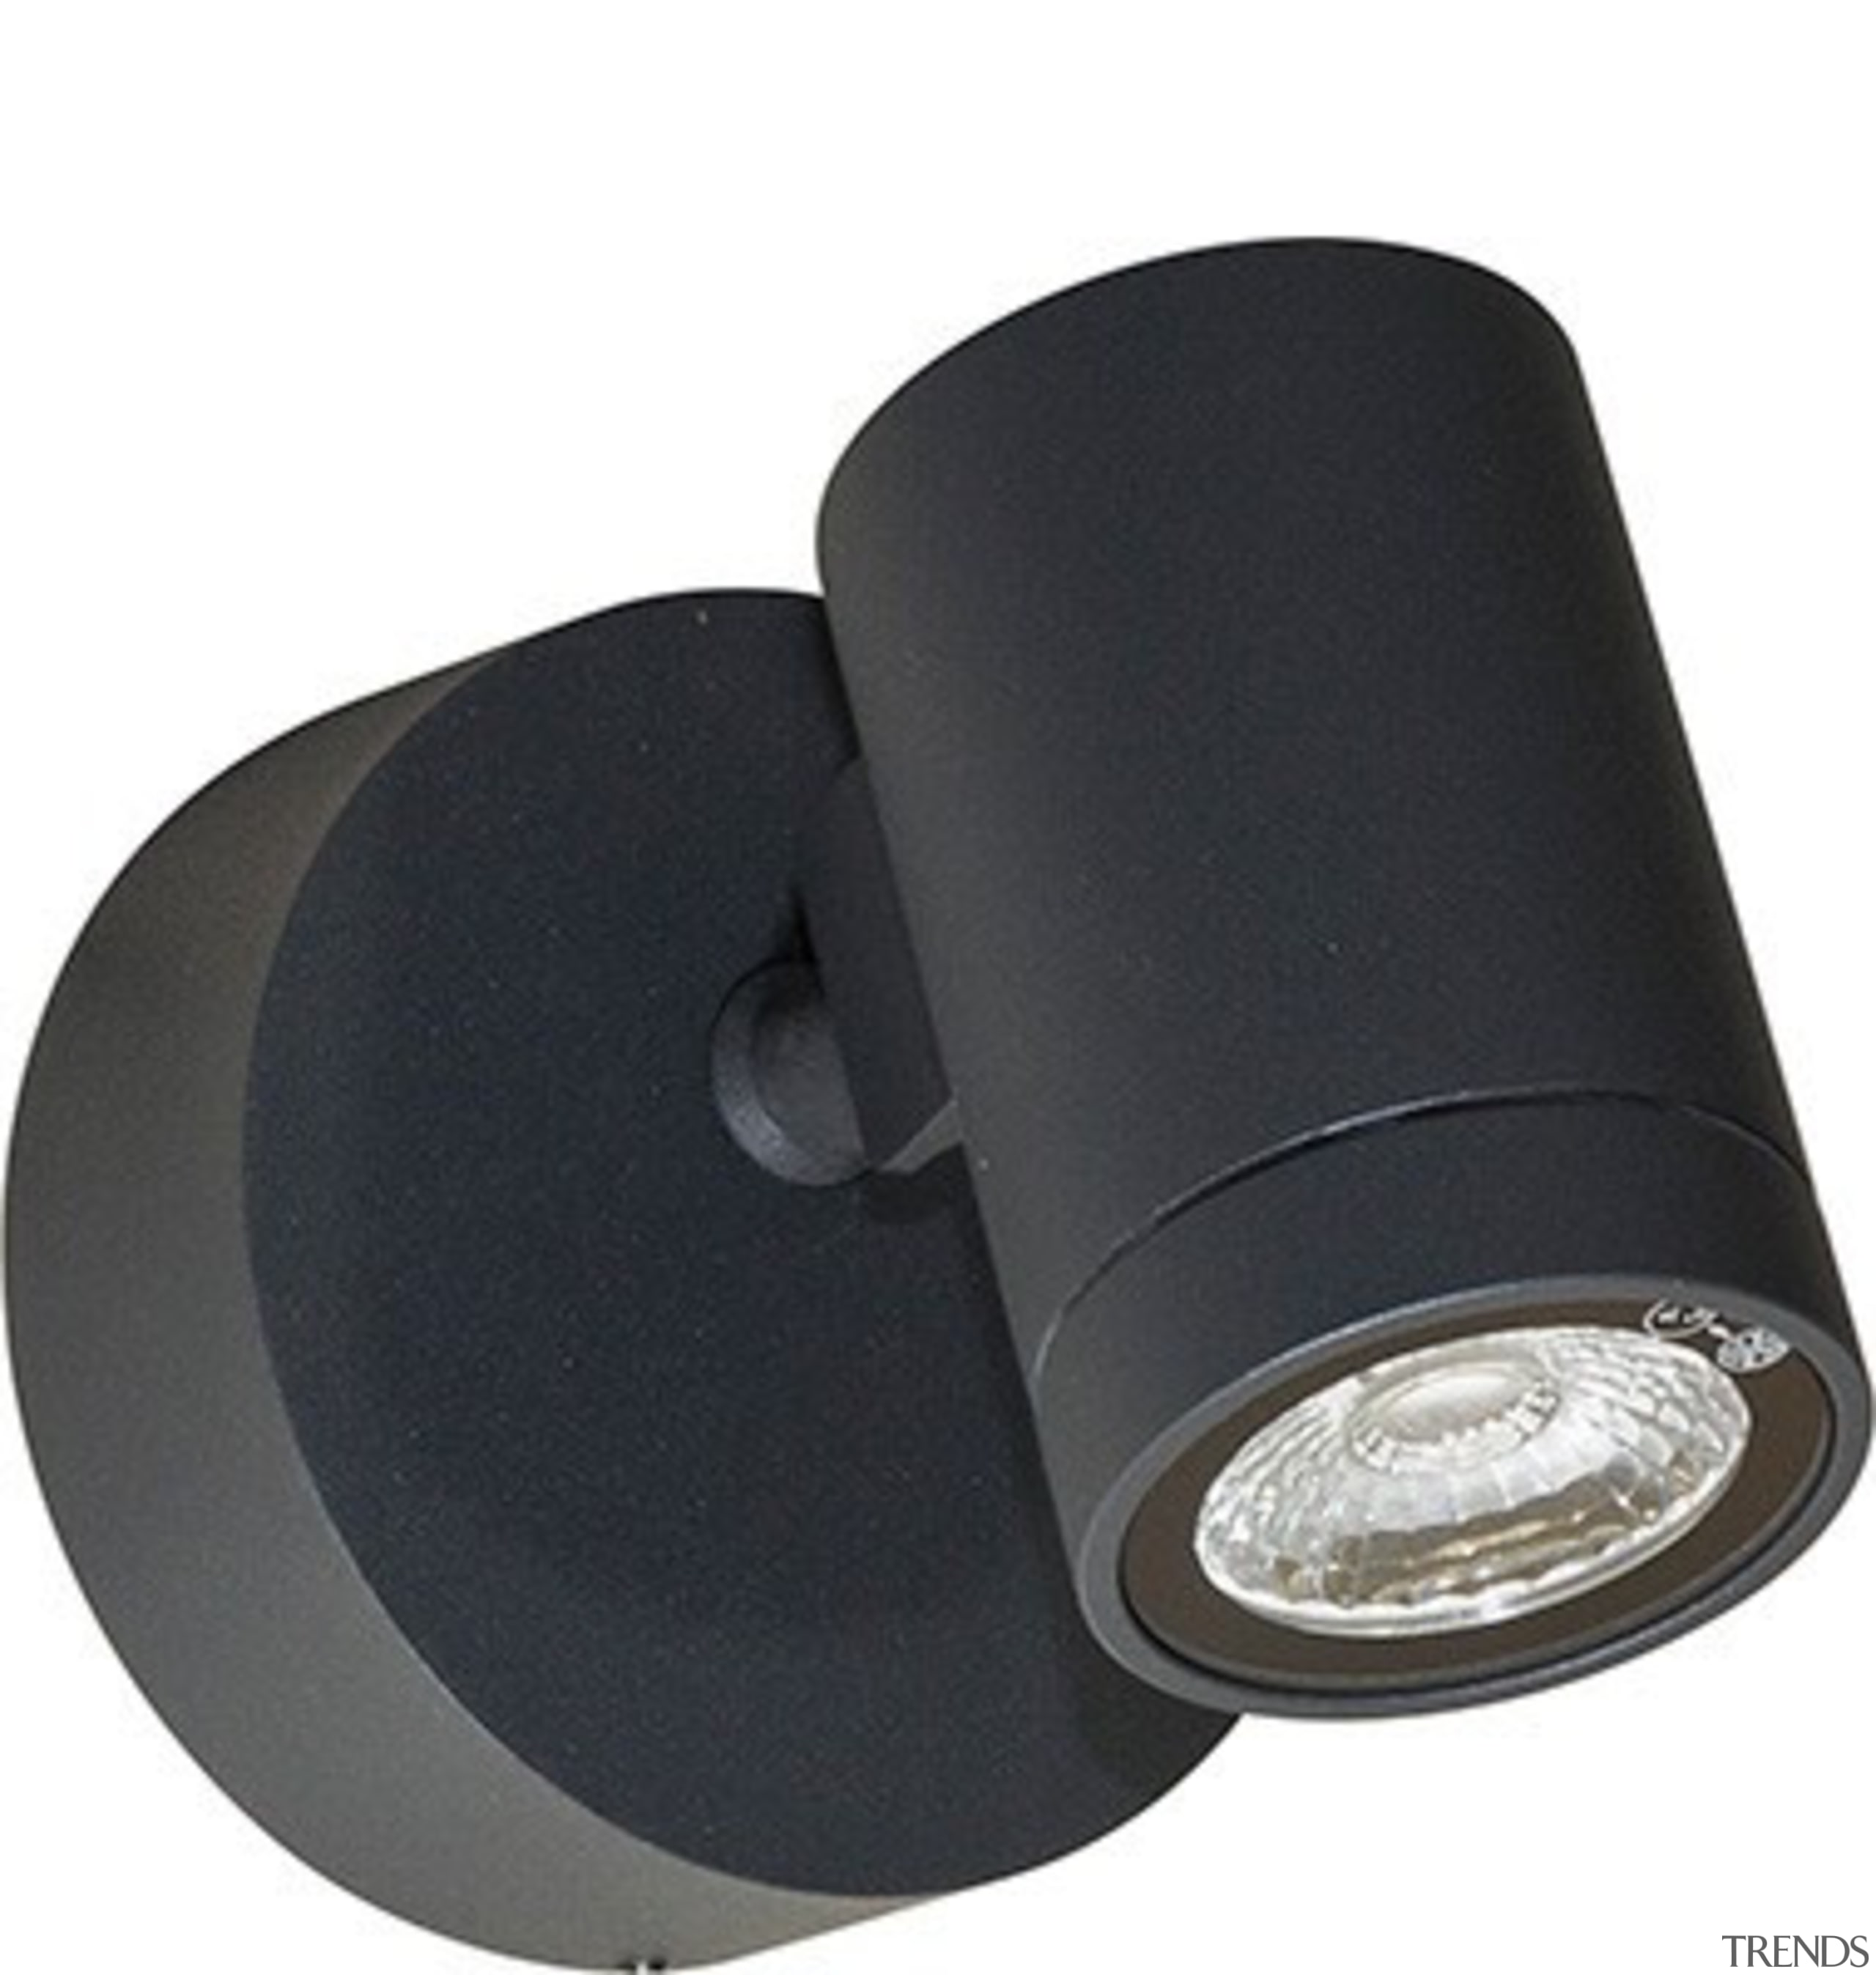 FeaturesOur Gunnsy exterior spotlights feature highly efficient and hardware, lighting, product, product design, black, white